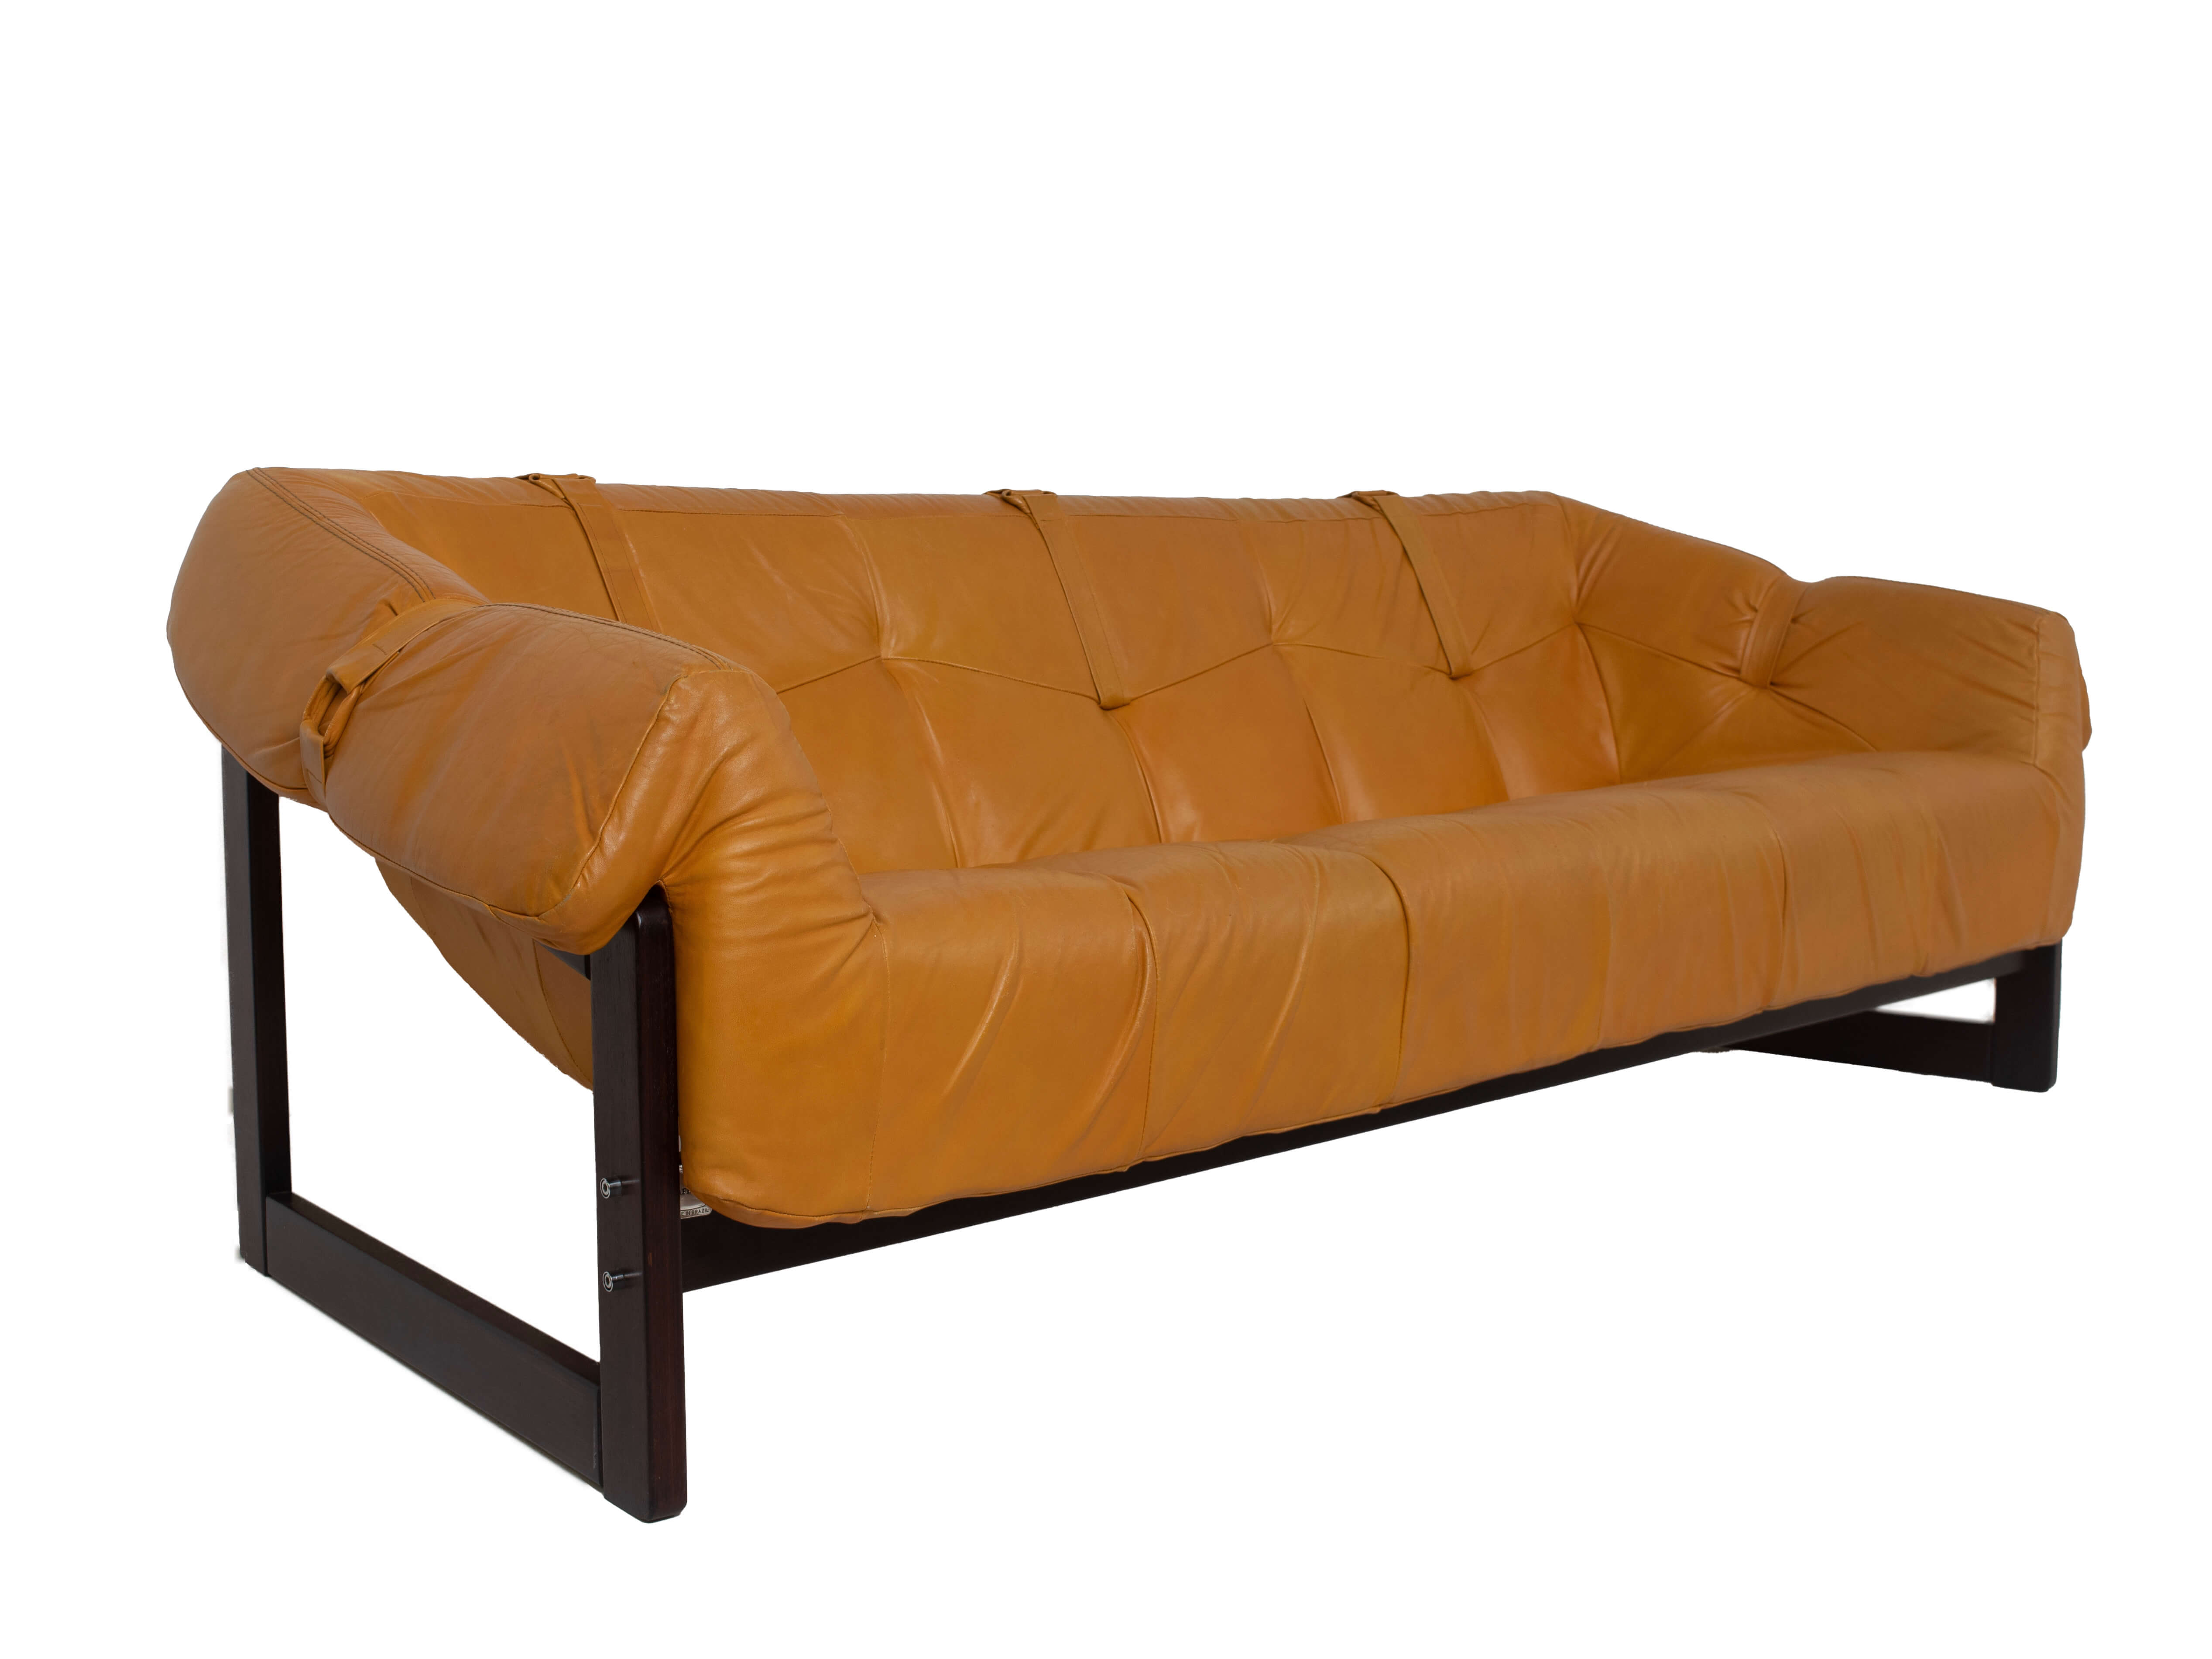 Percival Lafer Sofa MP-091 in Leather and Hardwood, Brazil 1960s